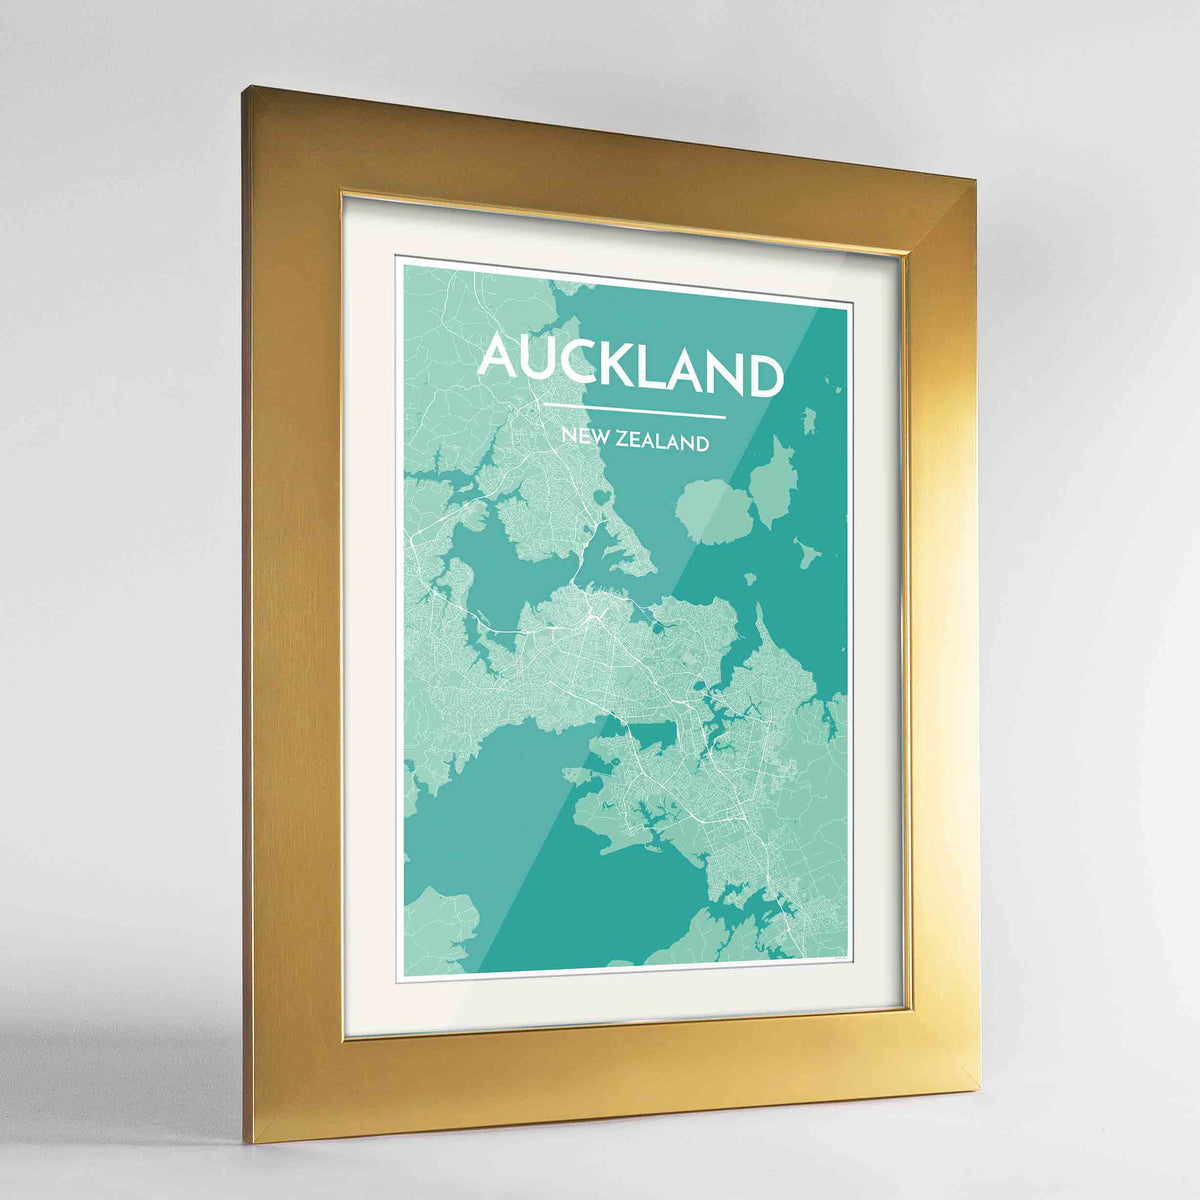 "Framed Auckland Map Art Print 24x36"" Gold frame Point Two Design Group"